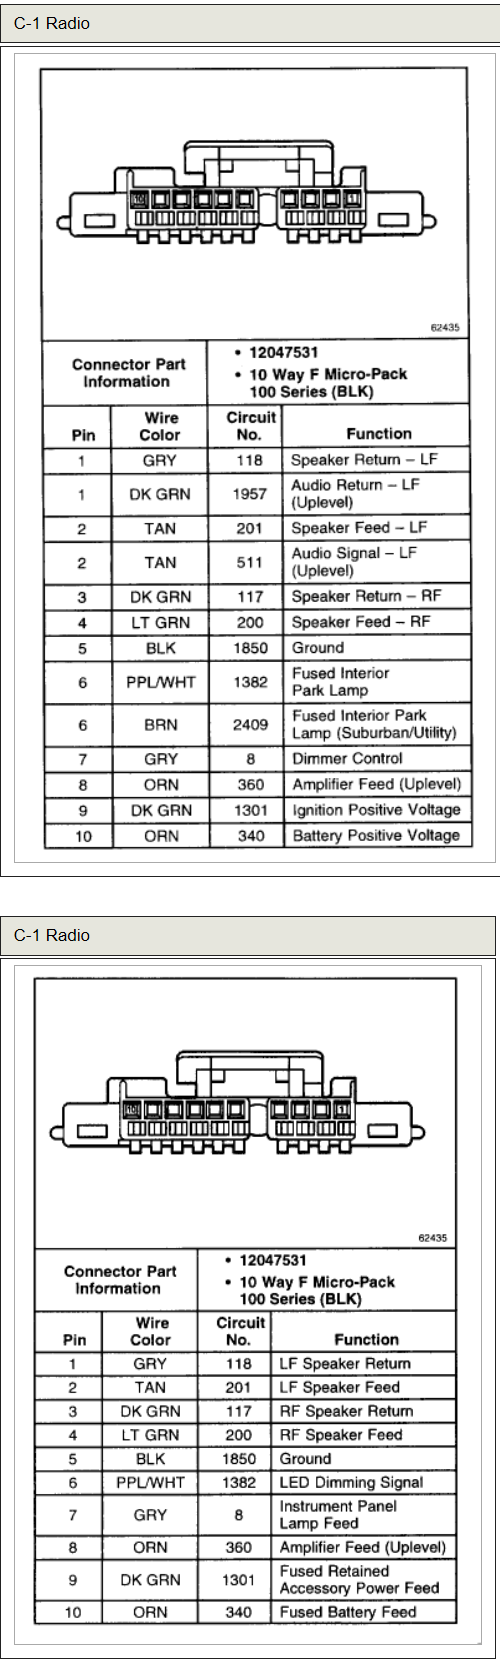 [SCHEMATICS_49CH]  2000 Suburban Stereo Wiring Diagram - 1990 Audi 90 Wiring Diagram for Wiring  Diagram Schematics | Chevy Tahoe Stereo Wiring Diagram |  | Wiring Diagram Schematics